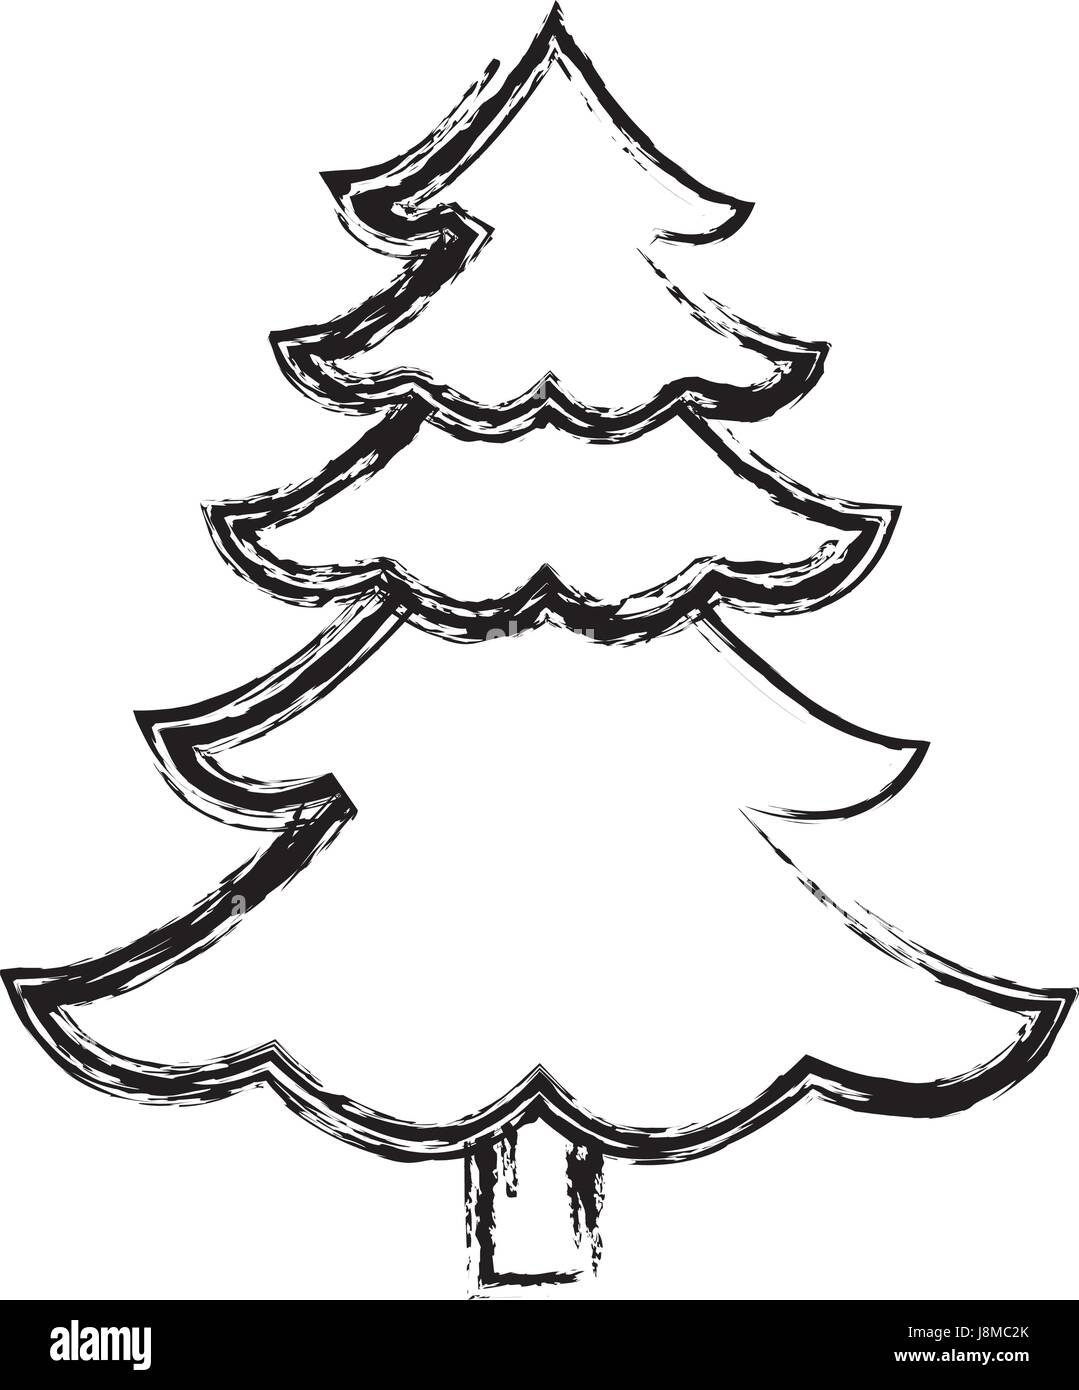 Pine tree isolated icon vector stockfotos pine tree - Weihnachtsbaum kiefer ...